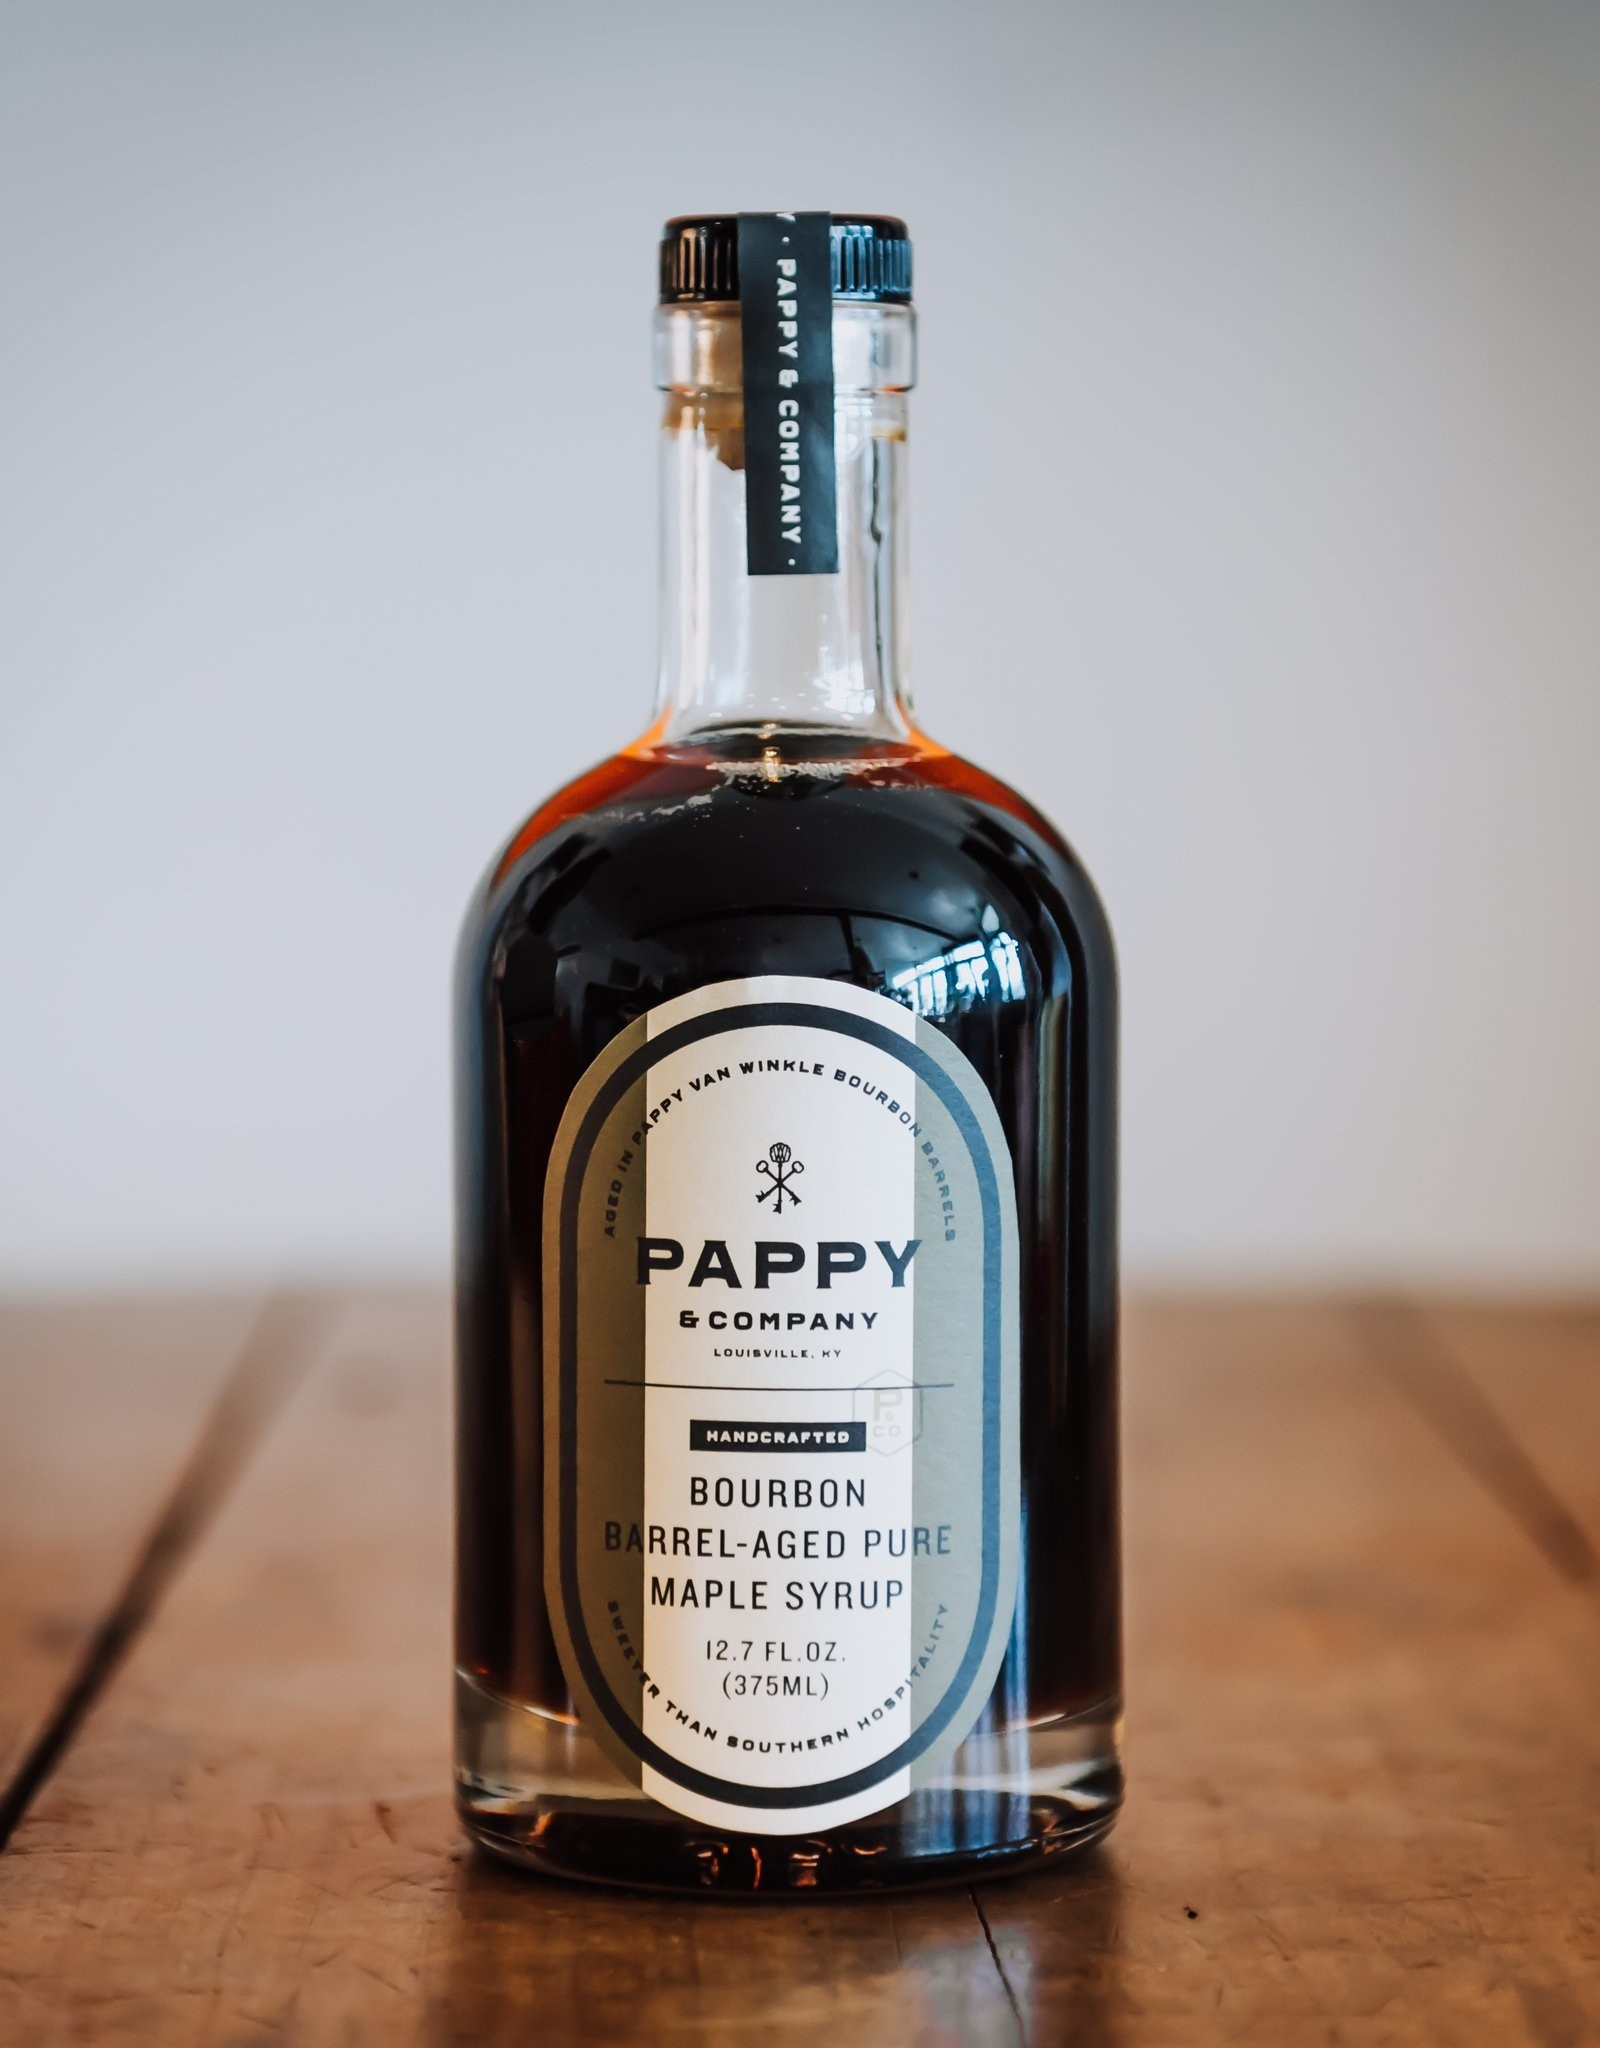 Bourbon Barrel-Aged Pure Maple Syrup